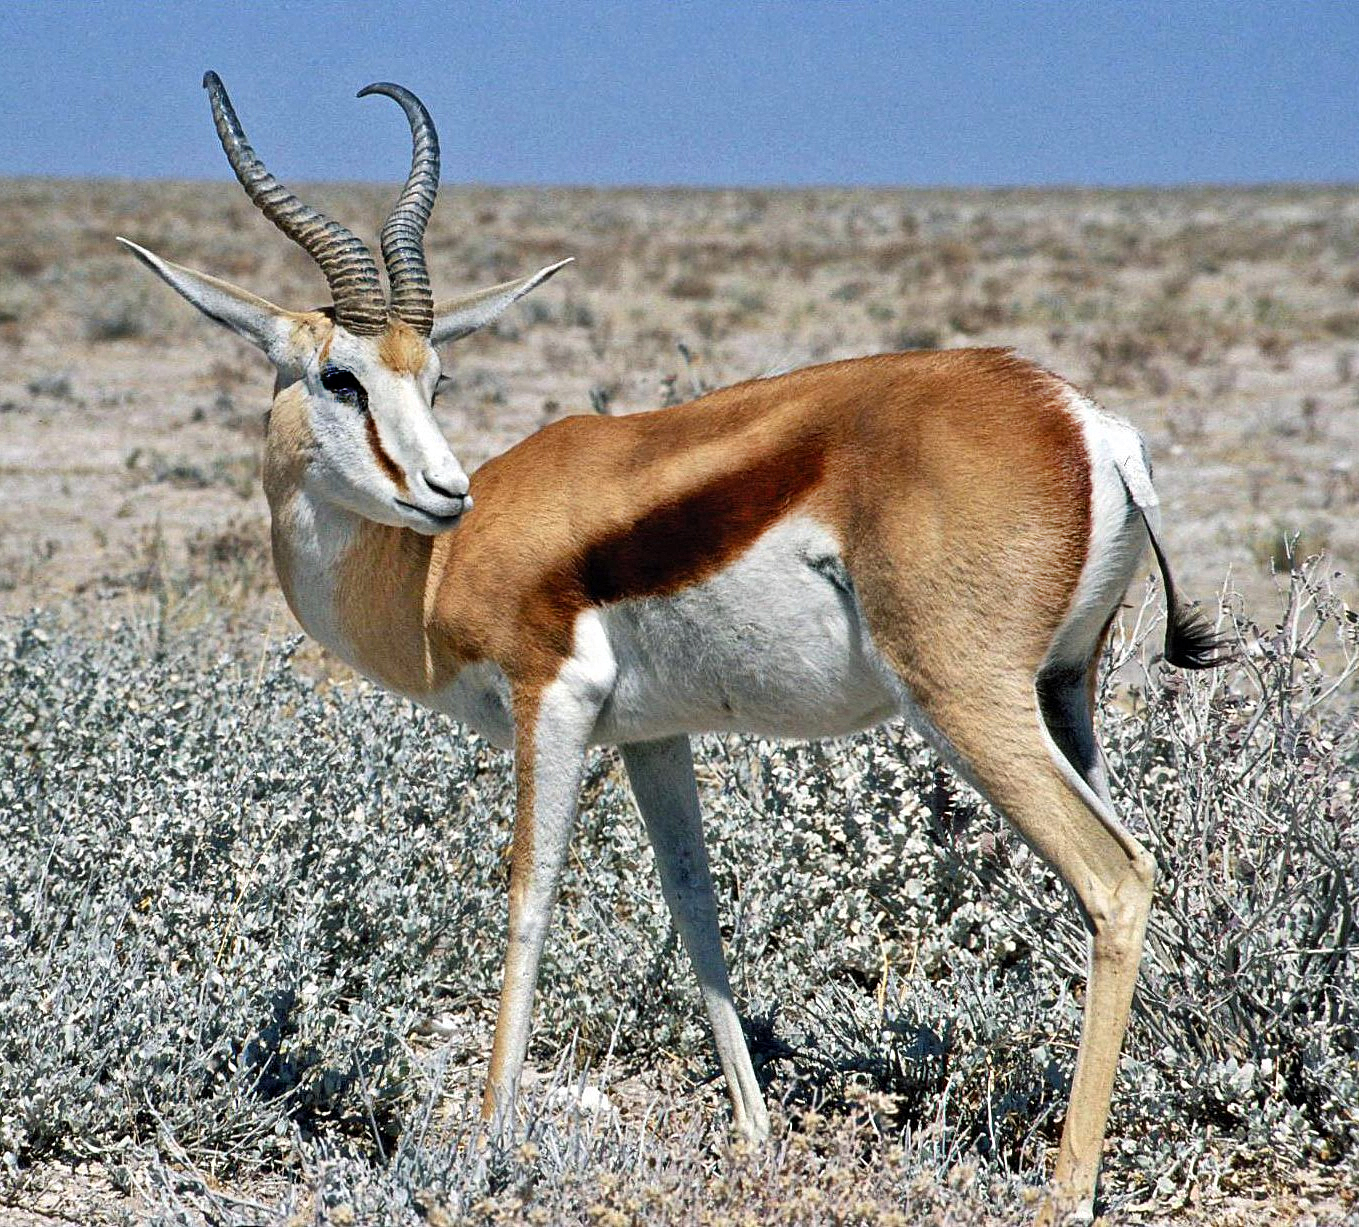 http://upload.wikimedia.org/wikipedia/commons/5/56/Springbok_Namibia.jpg